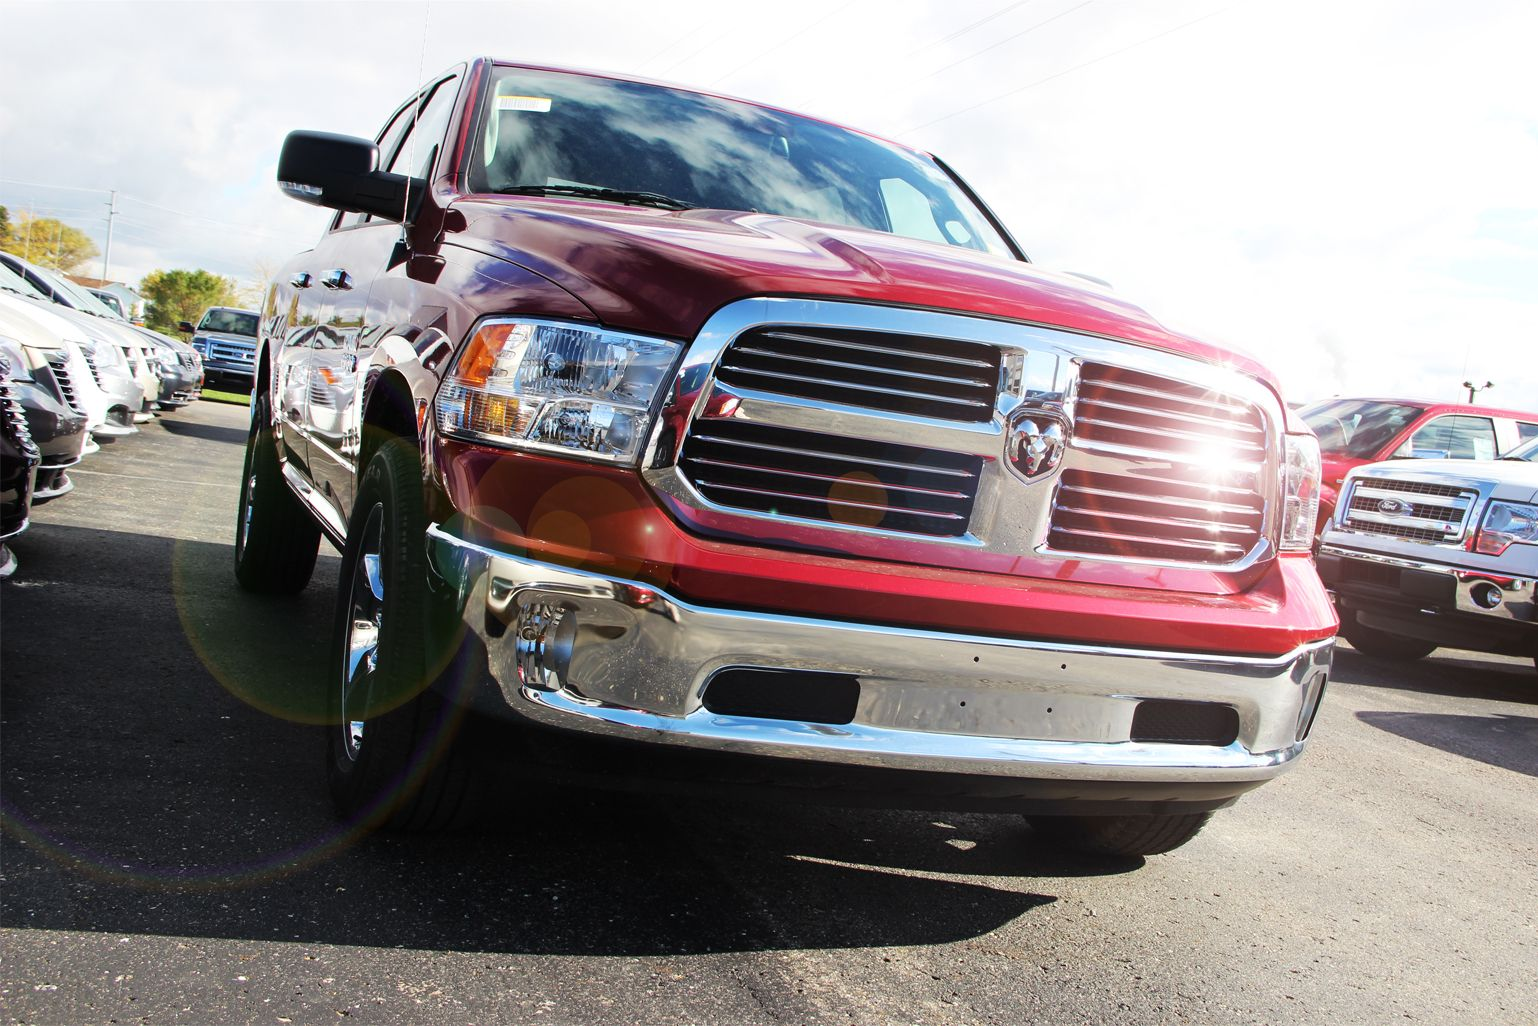 Ram Truck from Moore Motor Sales at the dealership in Caro